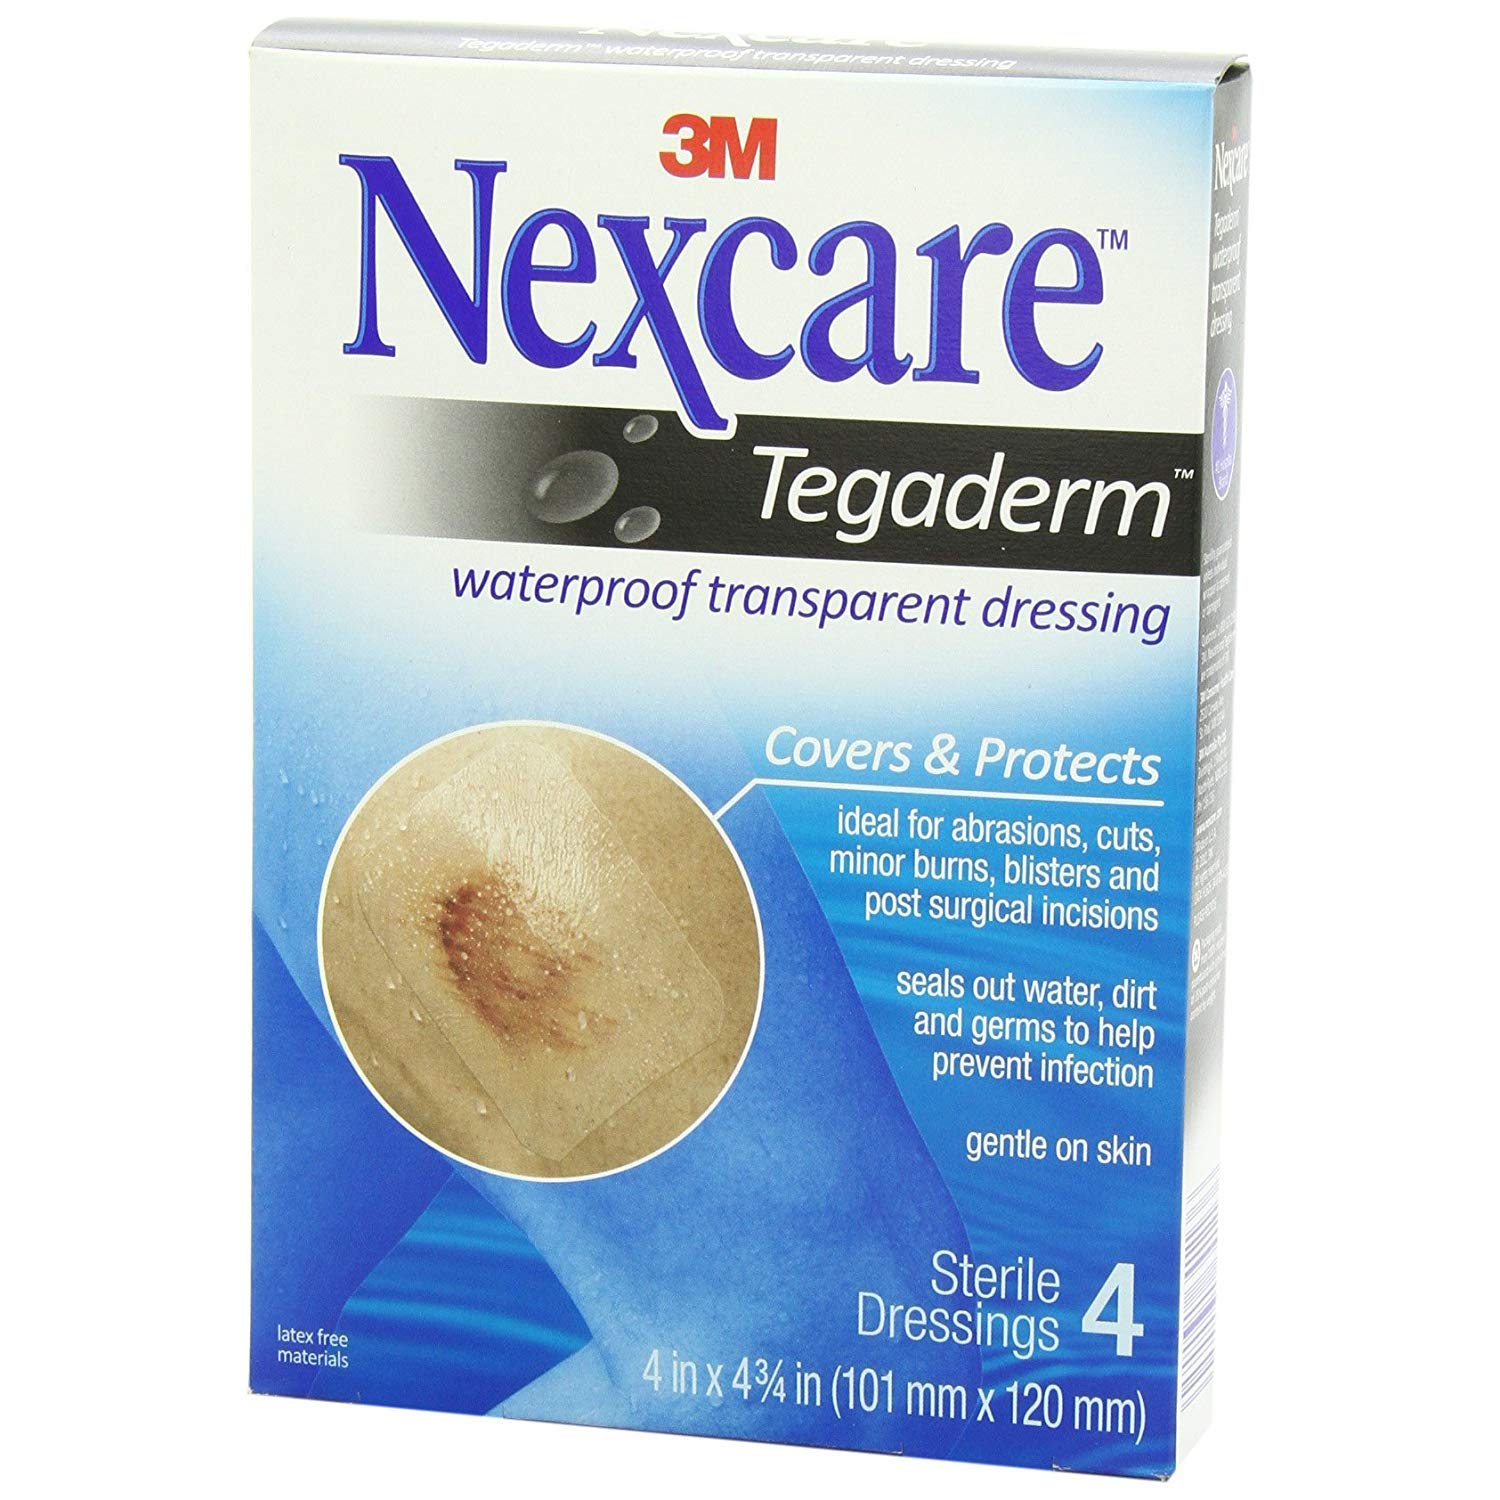 Nexcare Tegaderm Transparent Dressings 4 Inches X 4-3/4 Inches 4 Each (Pack of 8)